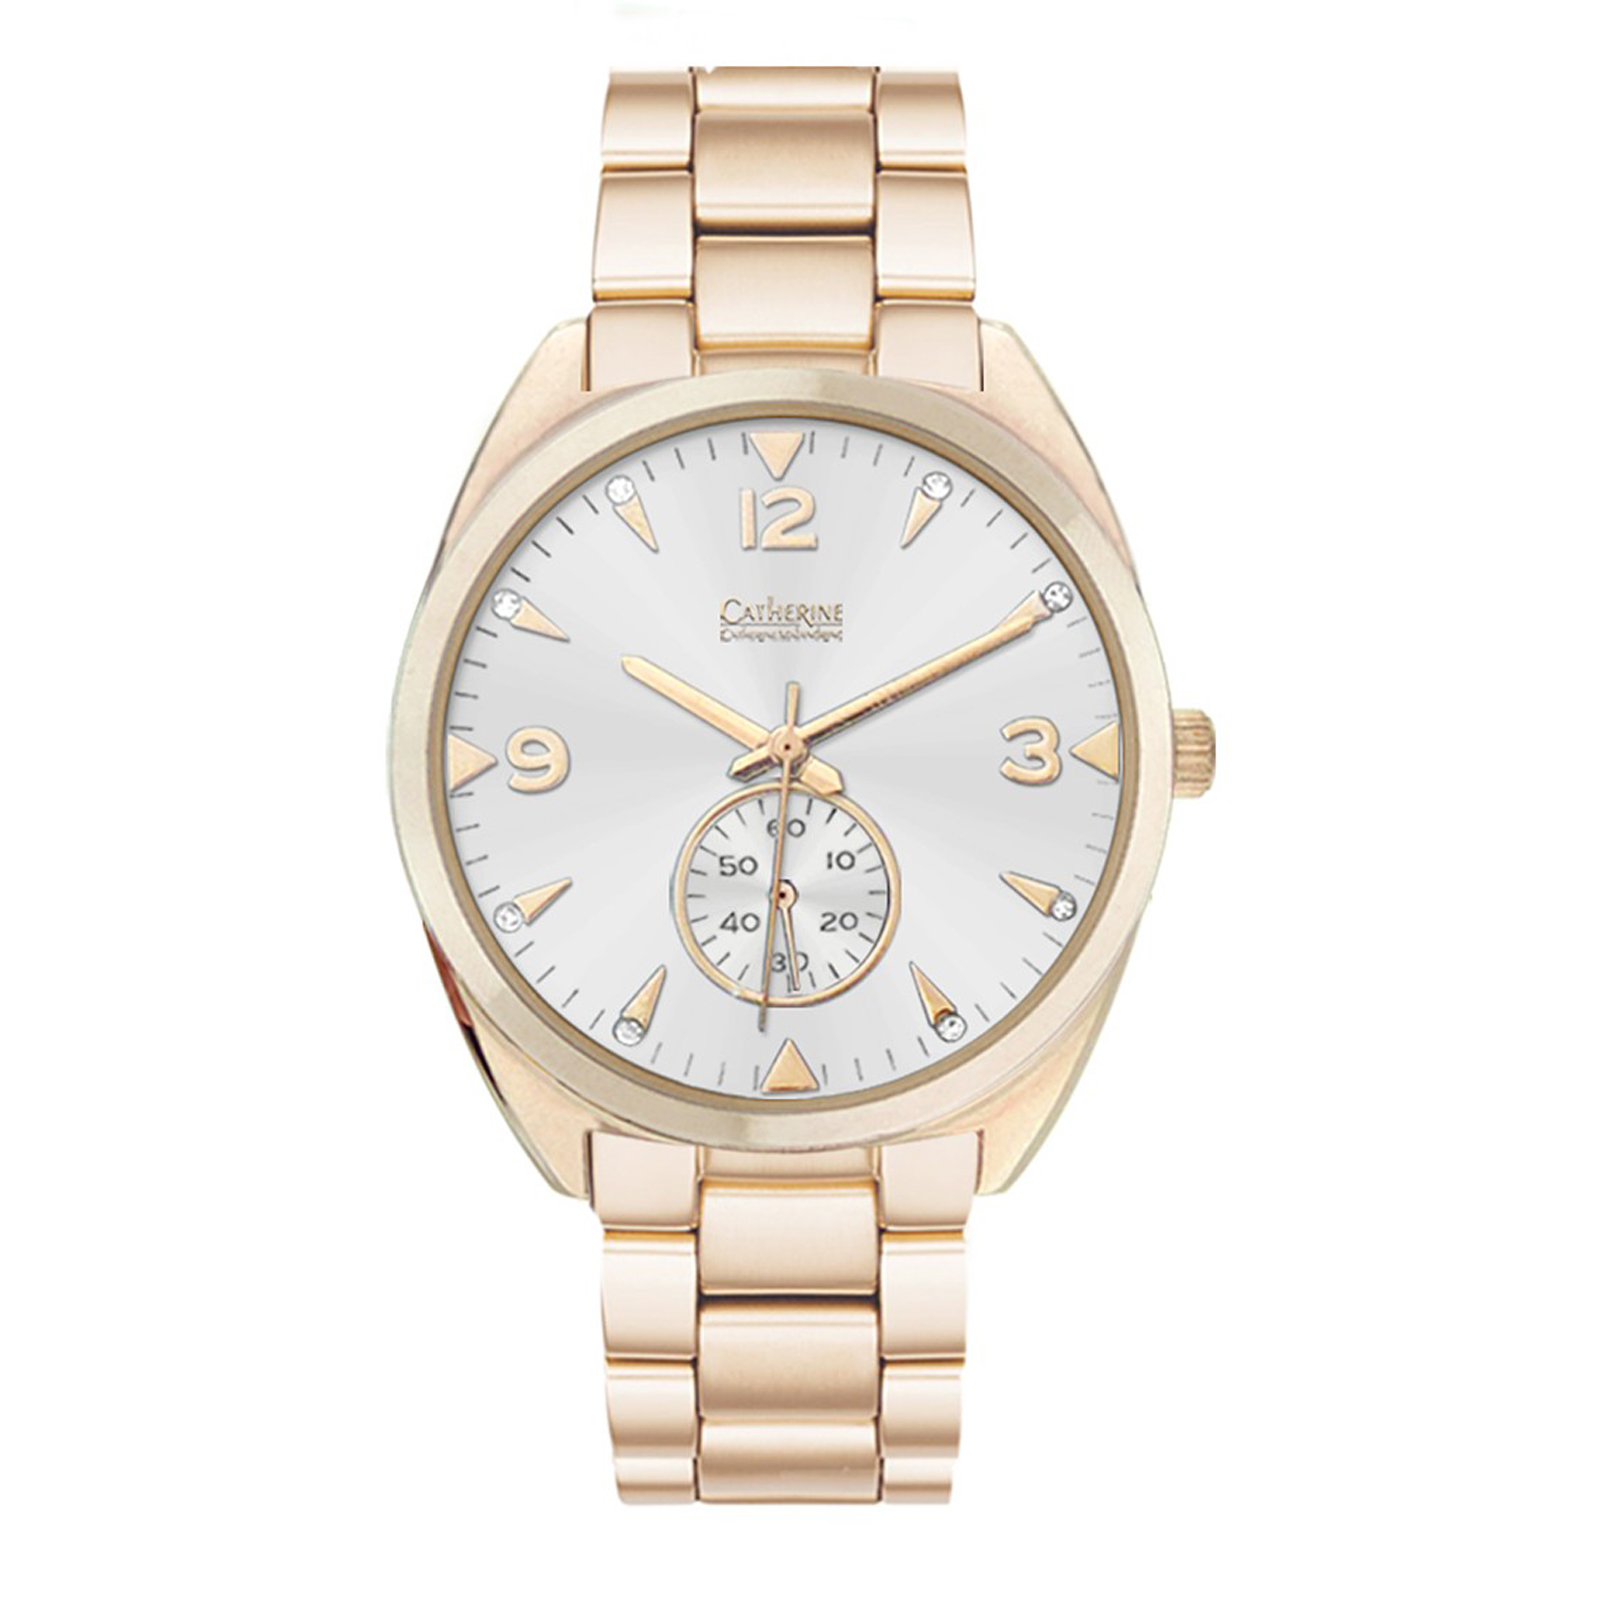 online oblong women s watches buysekonda watch crystal gold bracelet at rsp seksy strap johnlewis main pdp sekonda swarovski rose